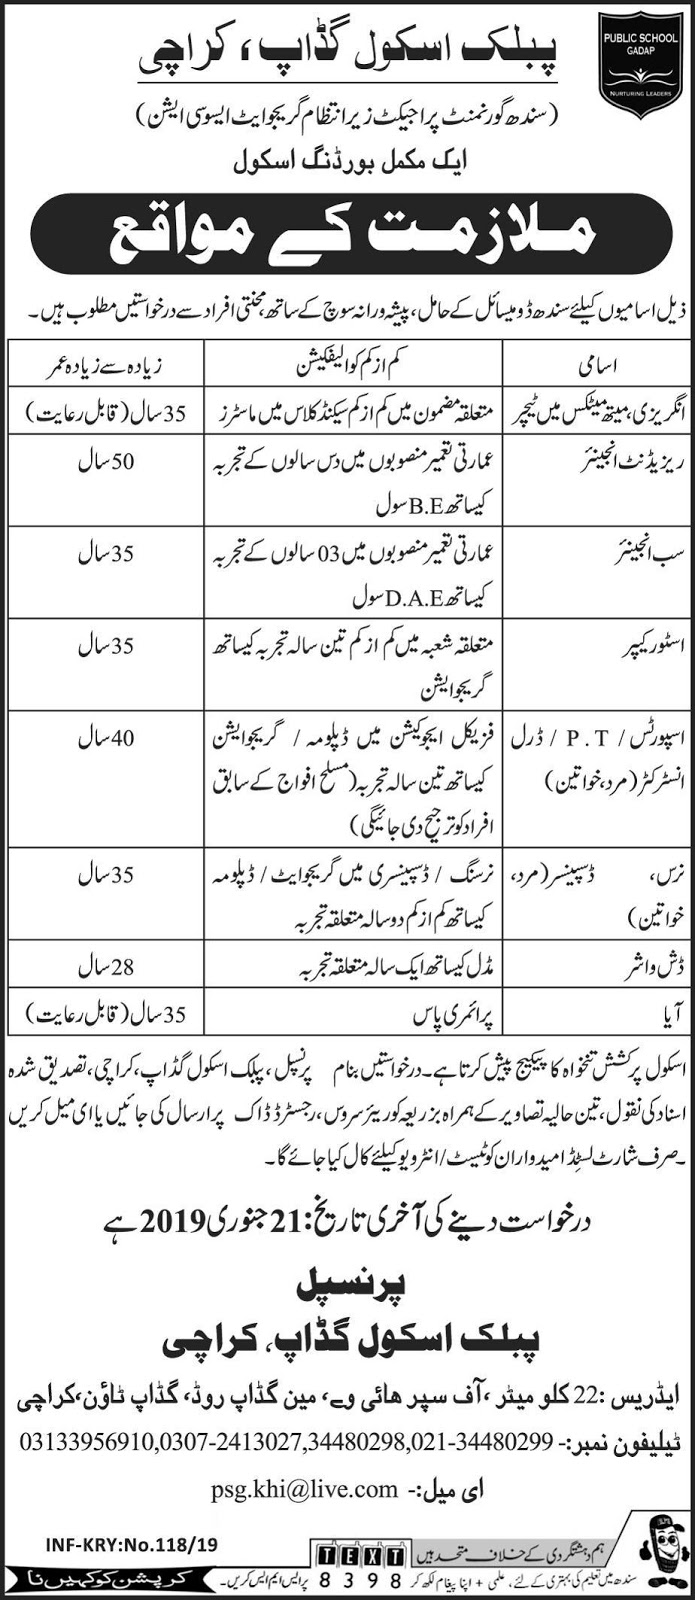 Jobs vacancies In Public School Gadap Karachi 11 January 2019